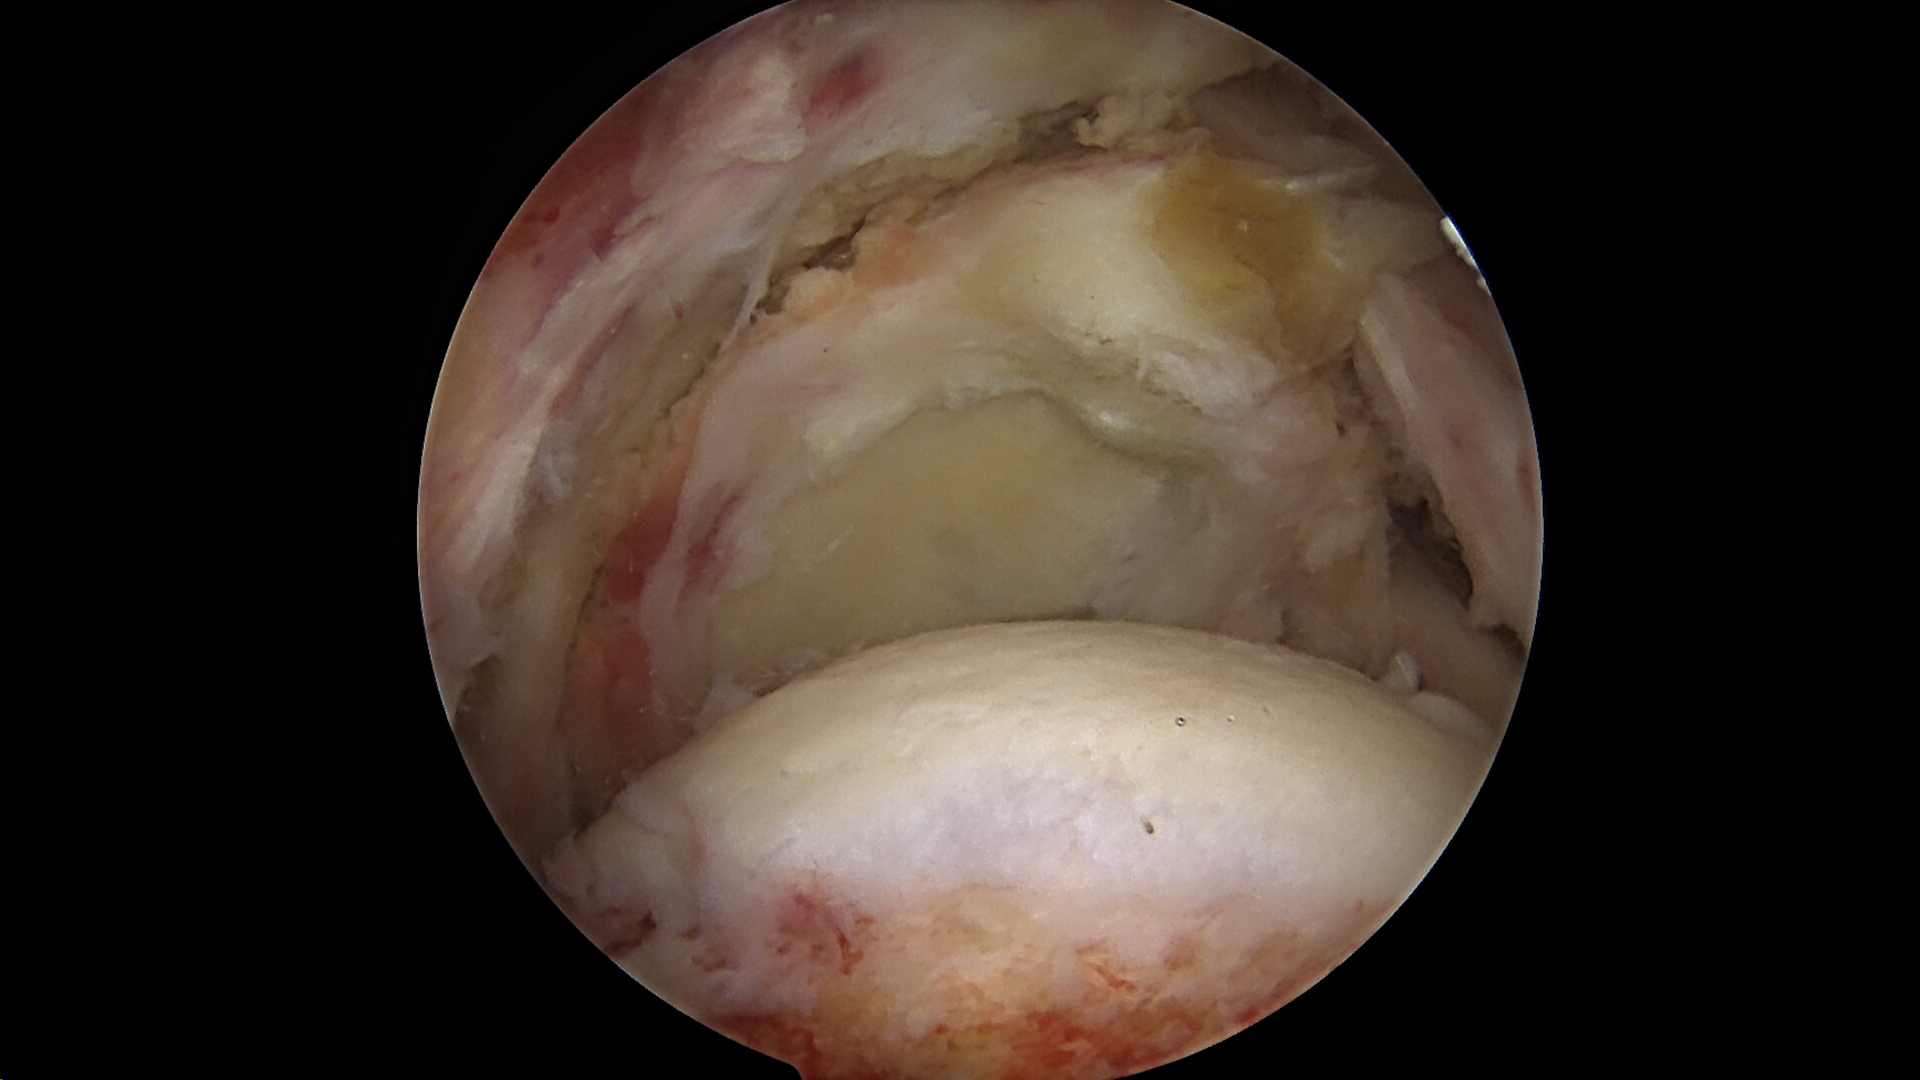 Massive retracted rotator cuff tear viewed from the lateral portal